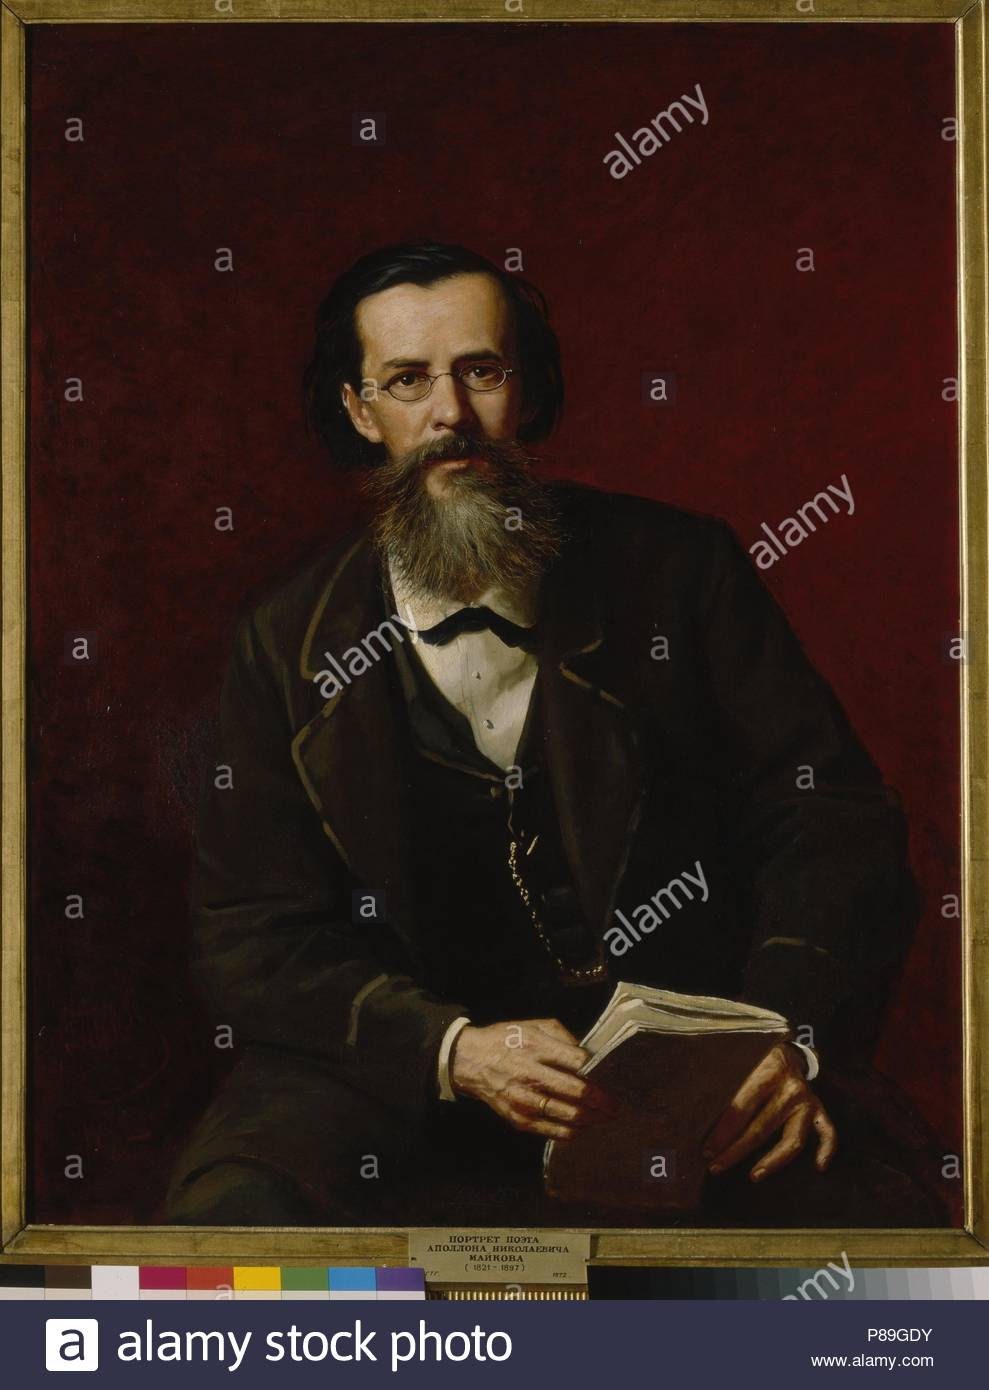 Portrait of the poet Apollon Maykov (1821-1897). Museum: State Tretyakov Gallery, Moscow. - Stock Image